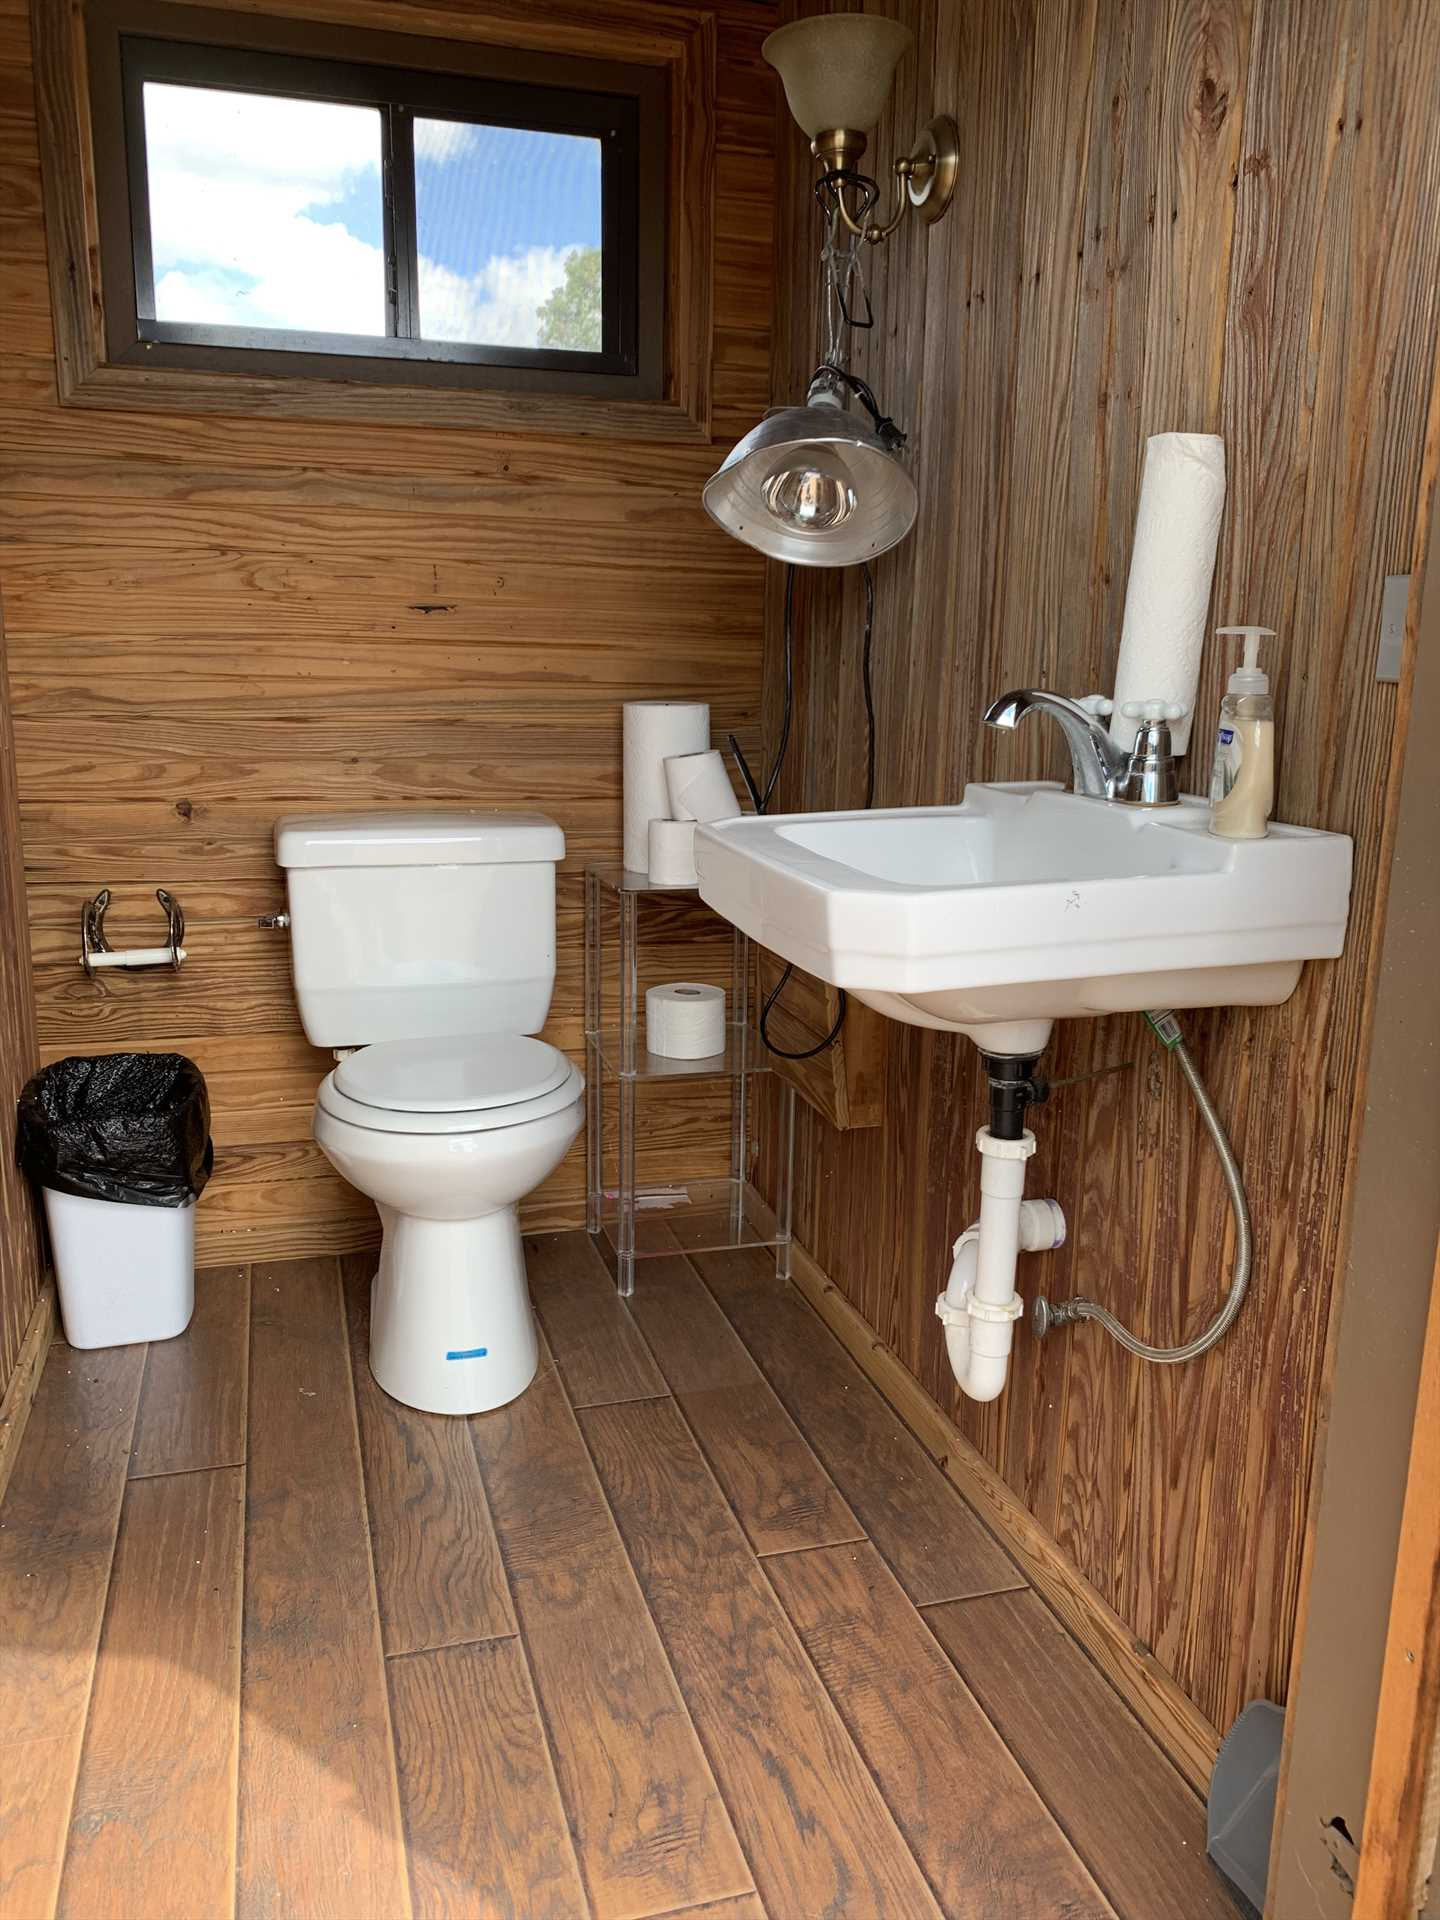 A shared outhouse (with modern updates, of course) is on the grounds for guests who don't necessarily want to return to their cabins.